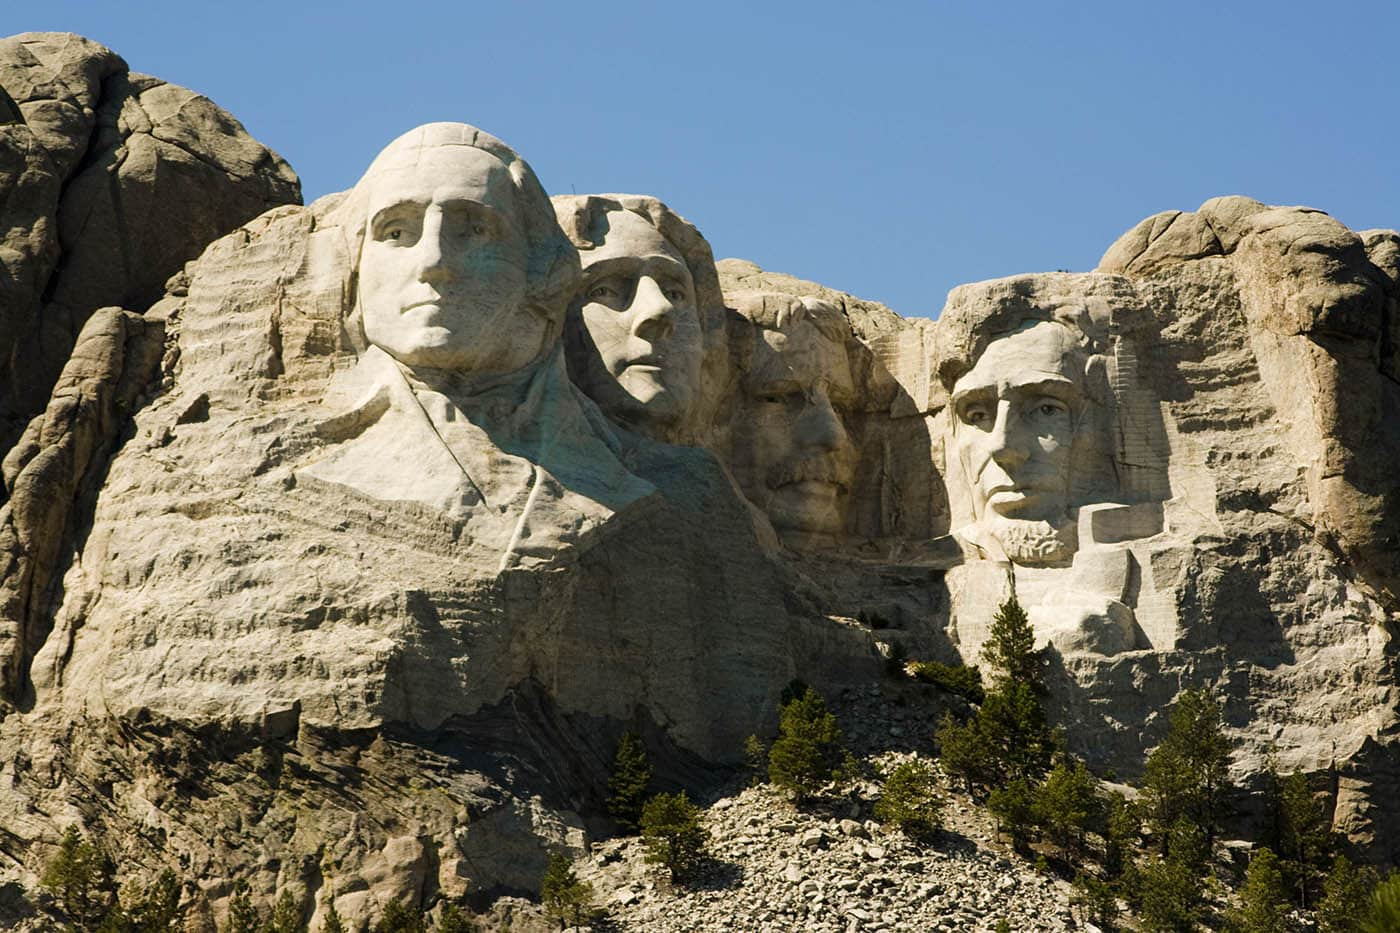 Mount Rushmore in Keystone, South Dakota. Labor Day Chicago to Mount Rushmore Road Trip.